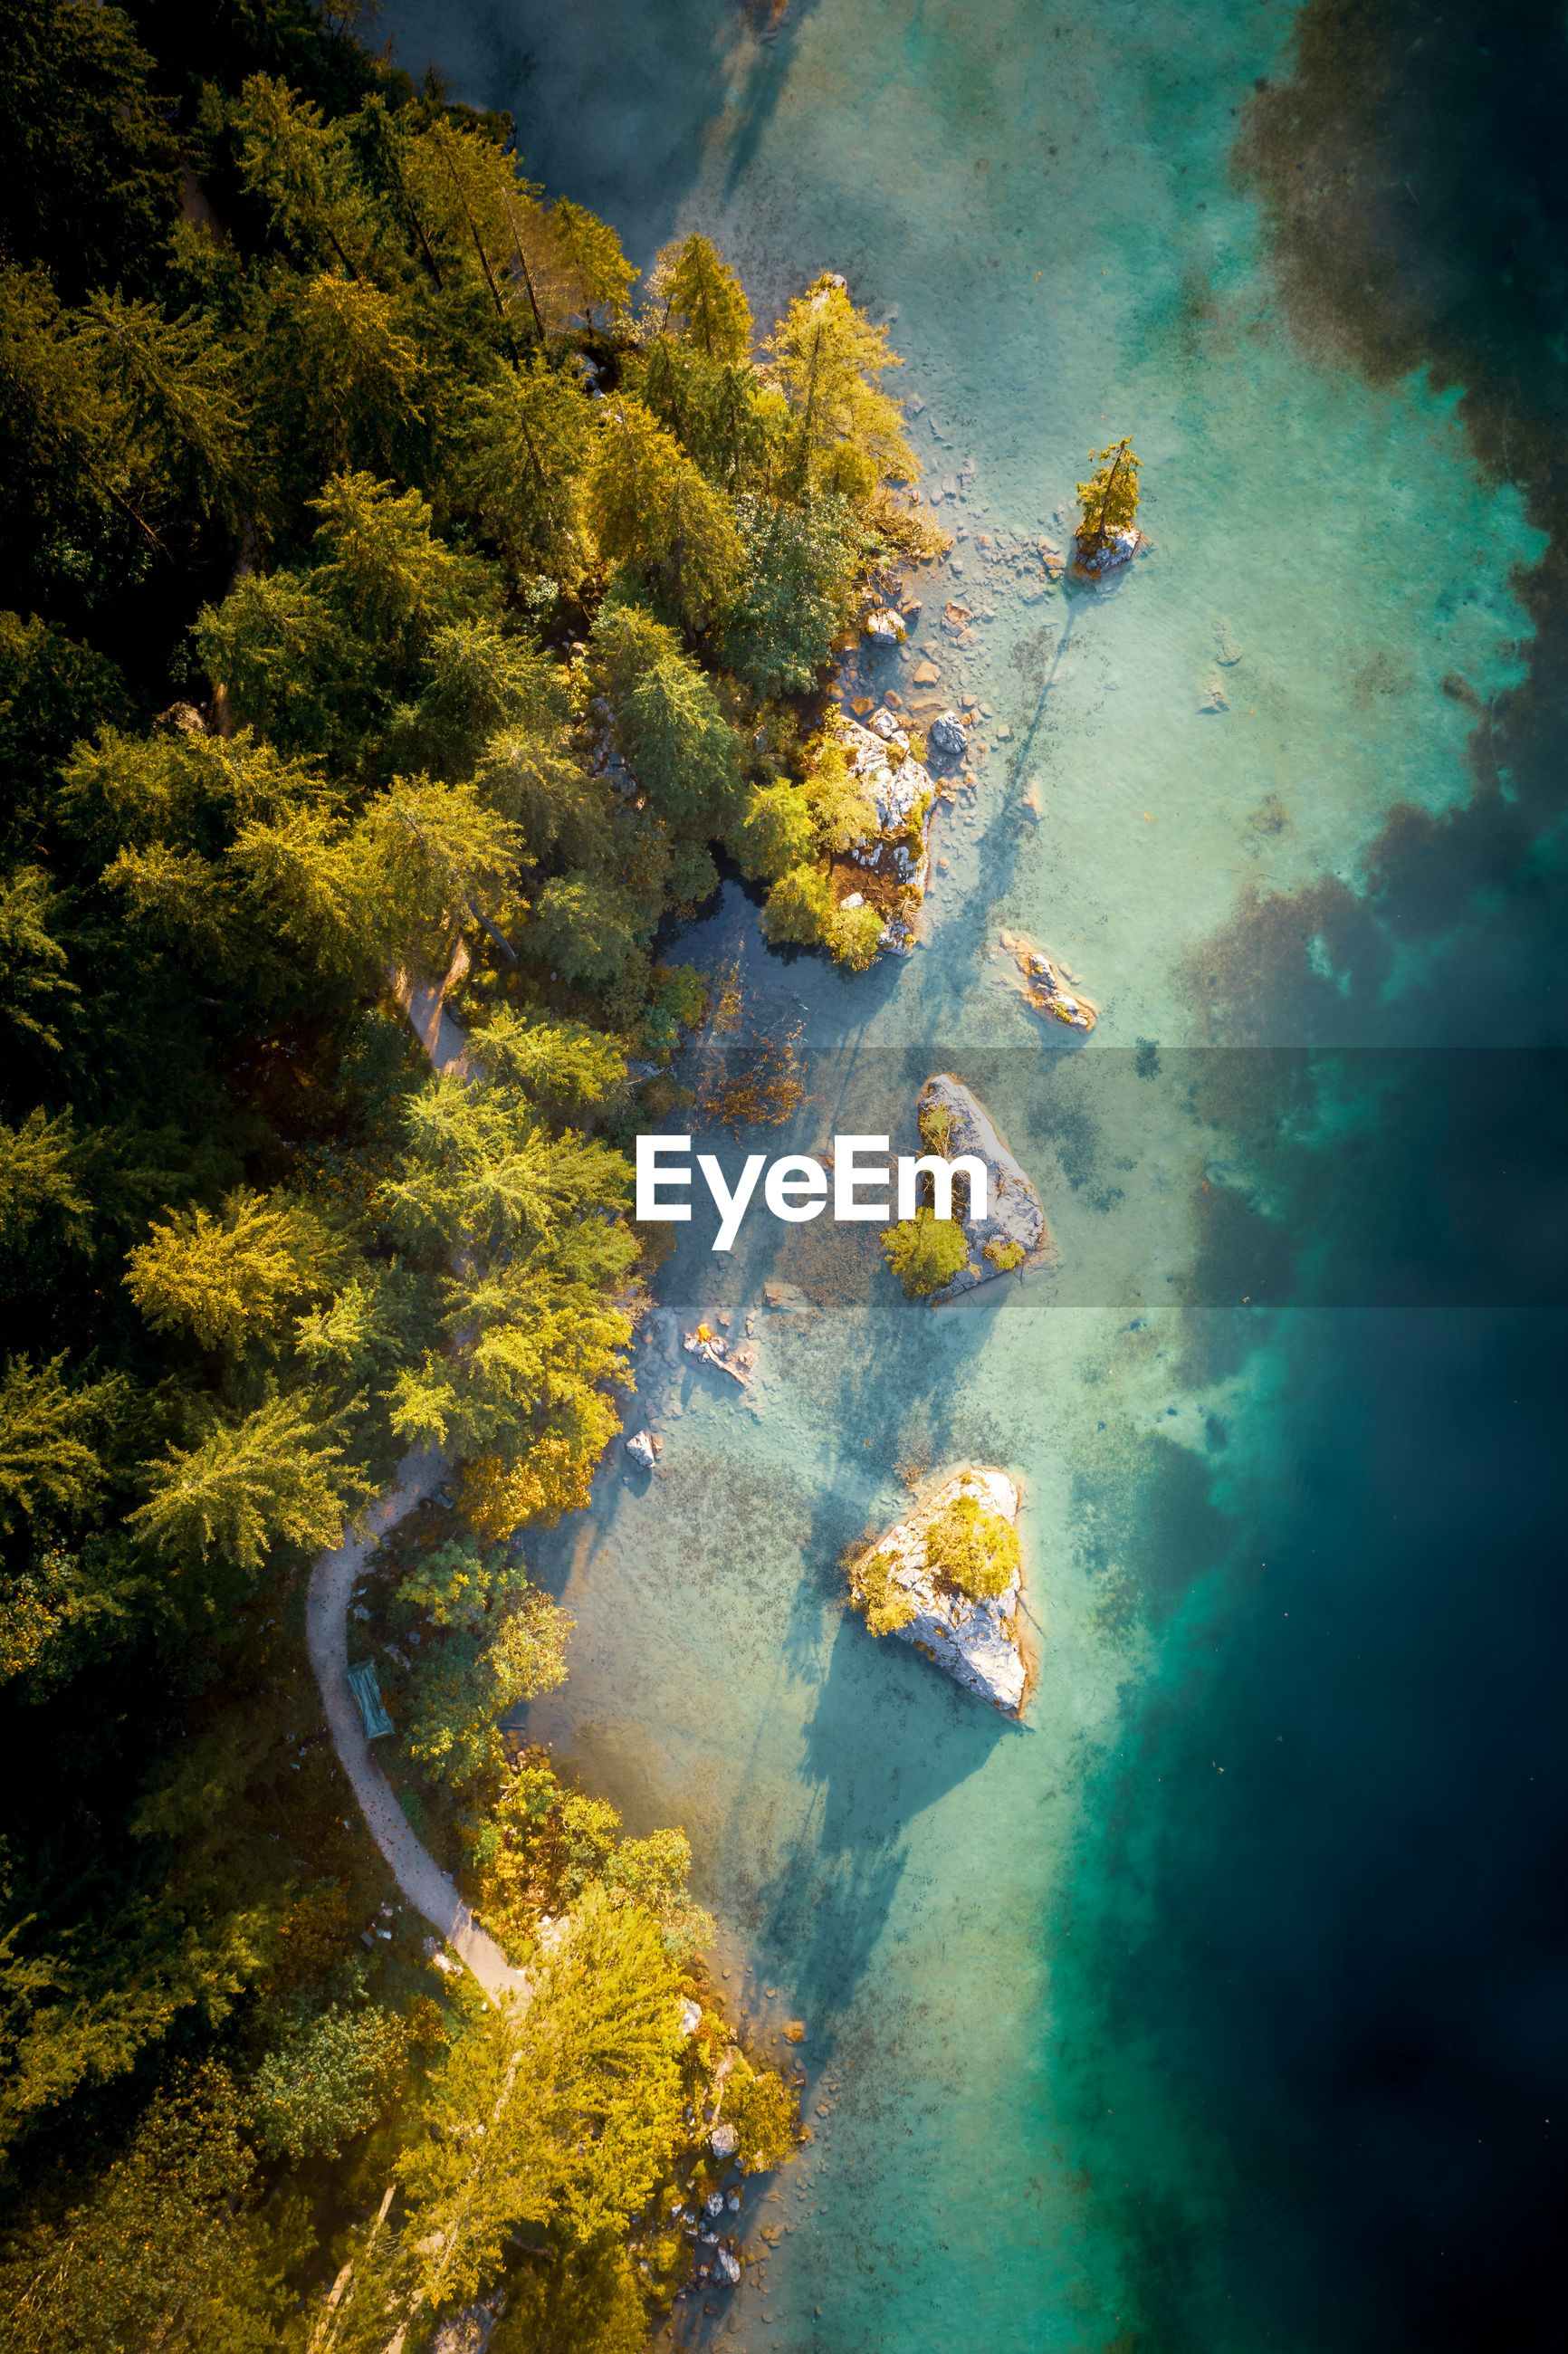 Aerial view of trees in forest by sea